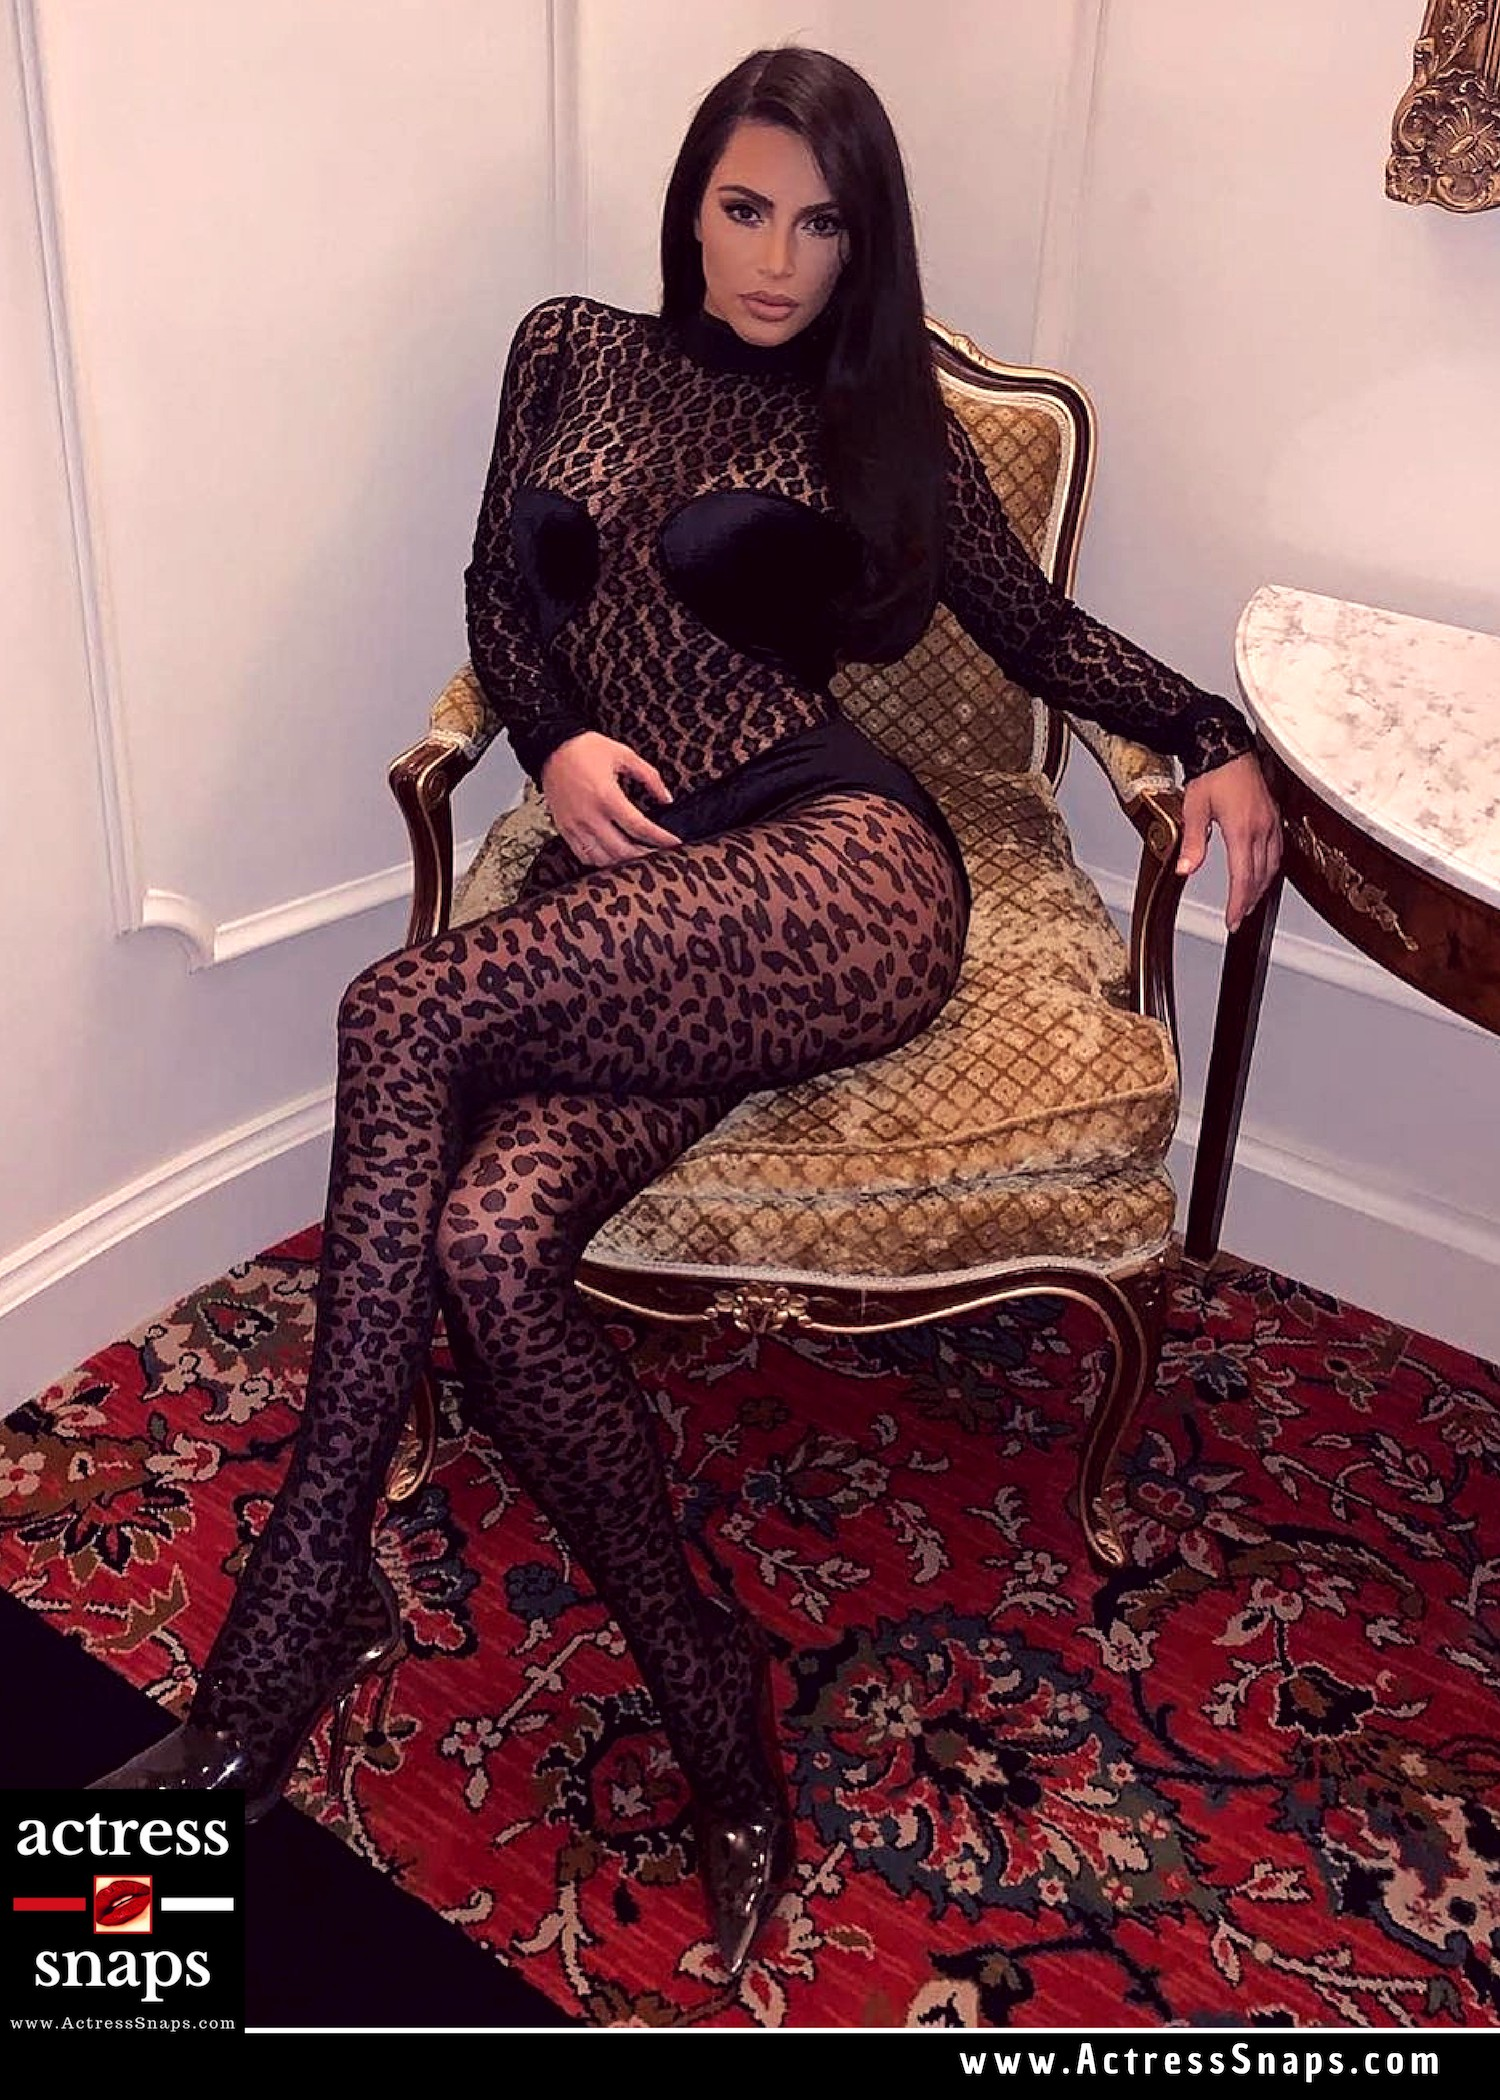 Kim Kardashian - Sexy in Leopard Print - Sexy Actress Pictures | Hot Actress Pictures - ActressSnaps.com